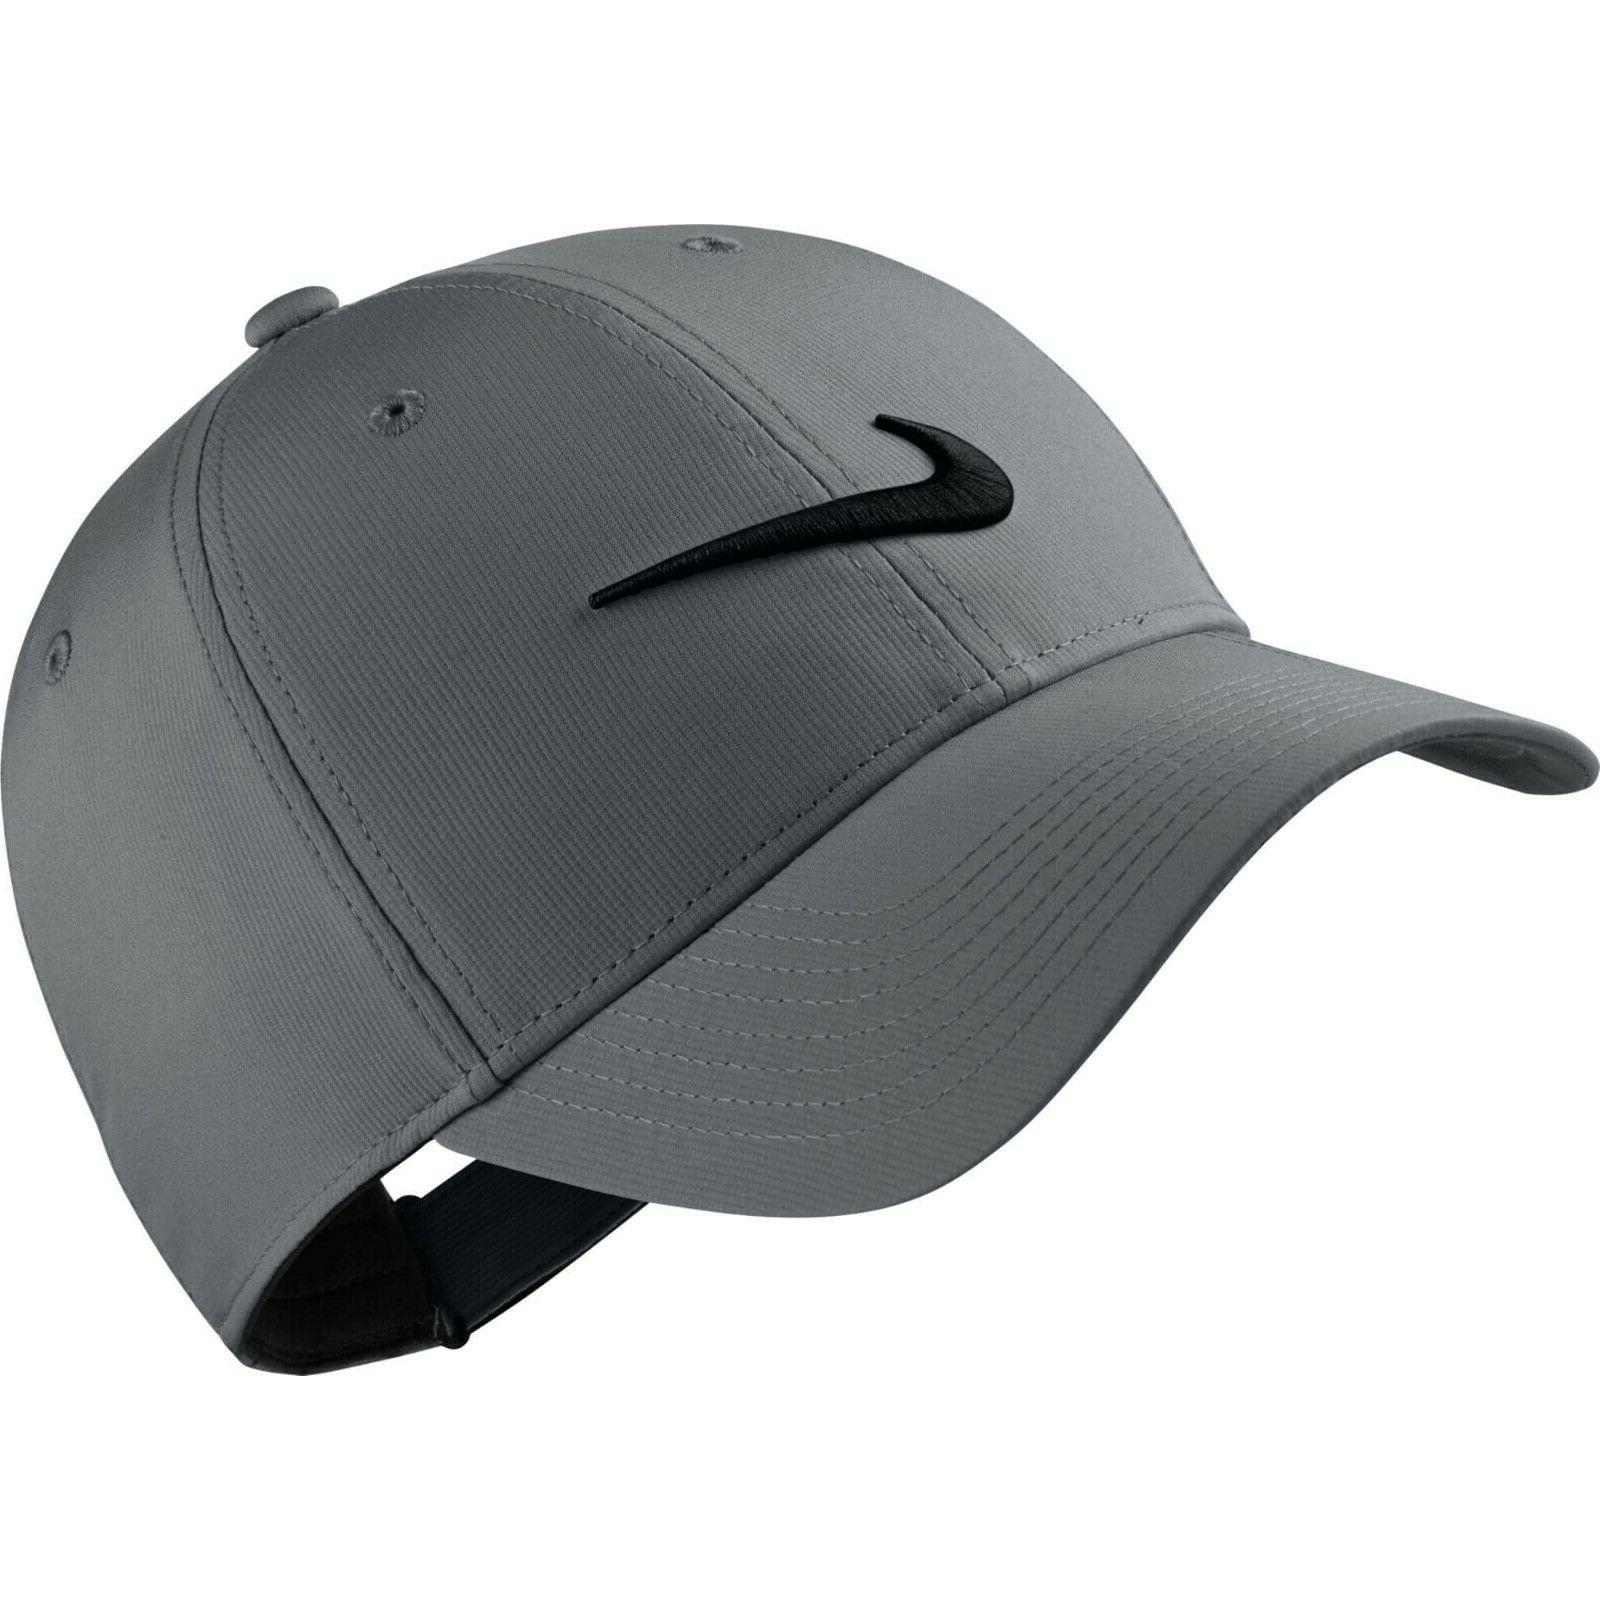 closeout legacy91 adjustable golf hat was 20